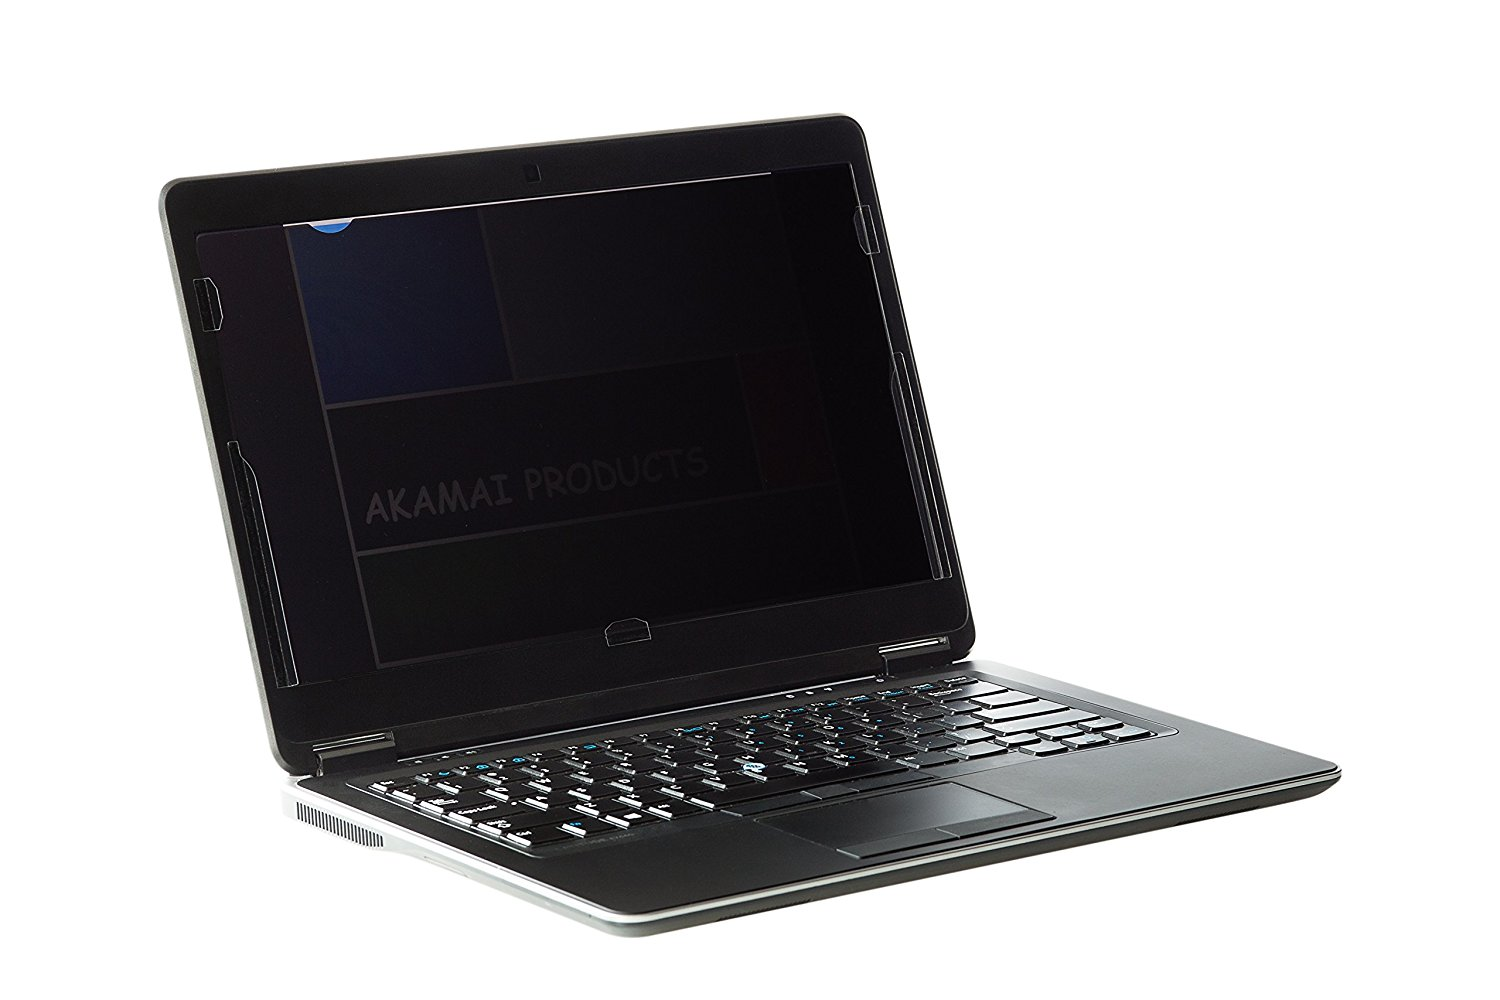 Visual hacking is on the rise. A privacy screen protector can help prevent that. Here are 20 laptop privacy screen protectors to consider - Akamai Privacy Screen for Widescreen Laptops